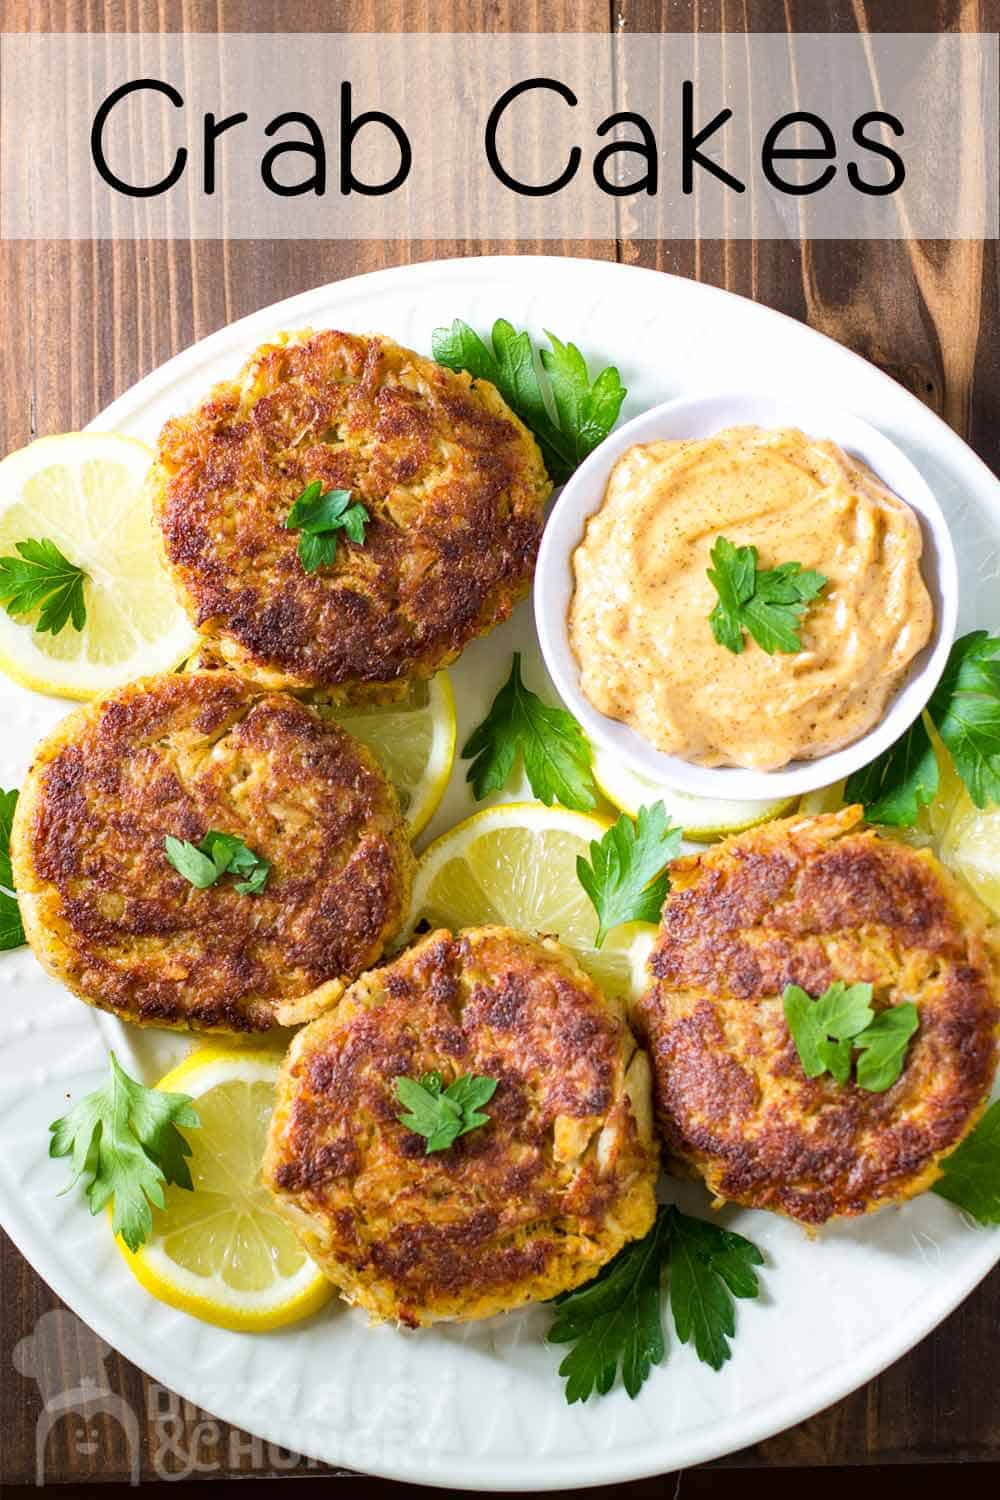 Overhead shot of four crab cakes in a circle on a white plate with a bowl or dipping sauce on the side on a bed of sliced lemons and herbs.